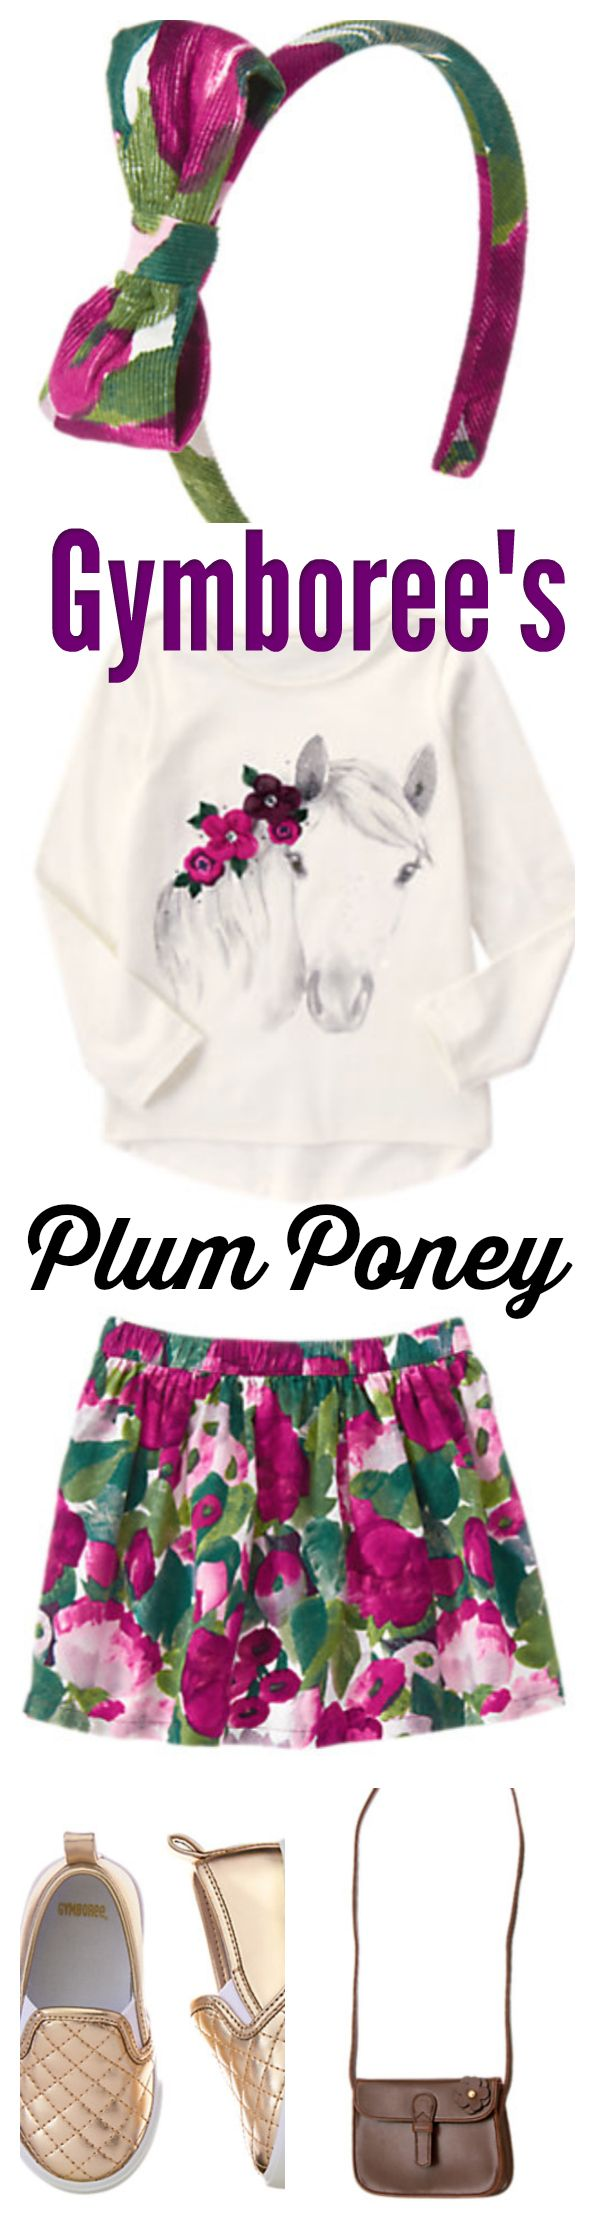 Gymboree has an adorable pony collection for your girl. Plum Pony features a cute equestrian theme with lush purple, golds, and sweet florals! She will be very stylish in Fall 2016! #ad